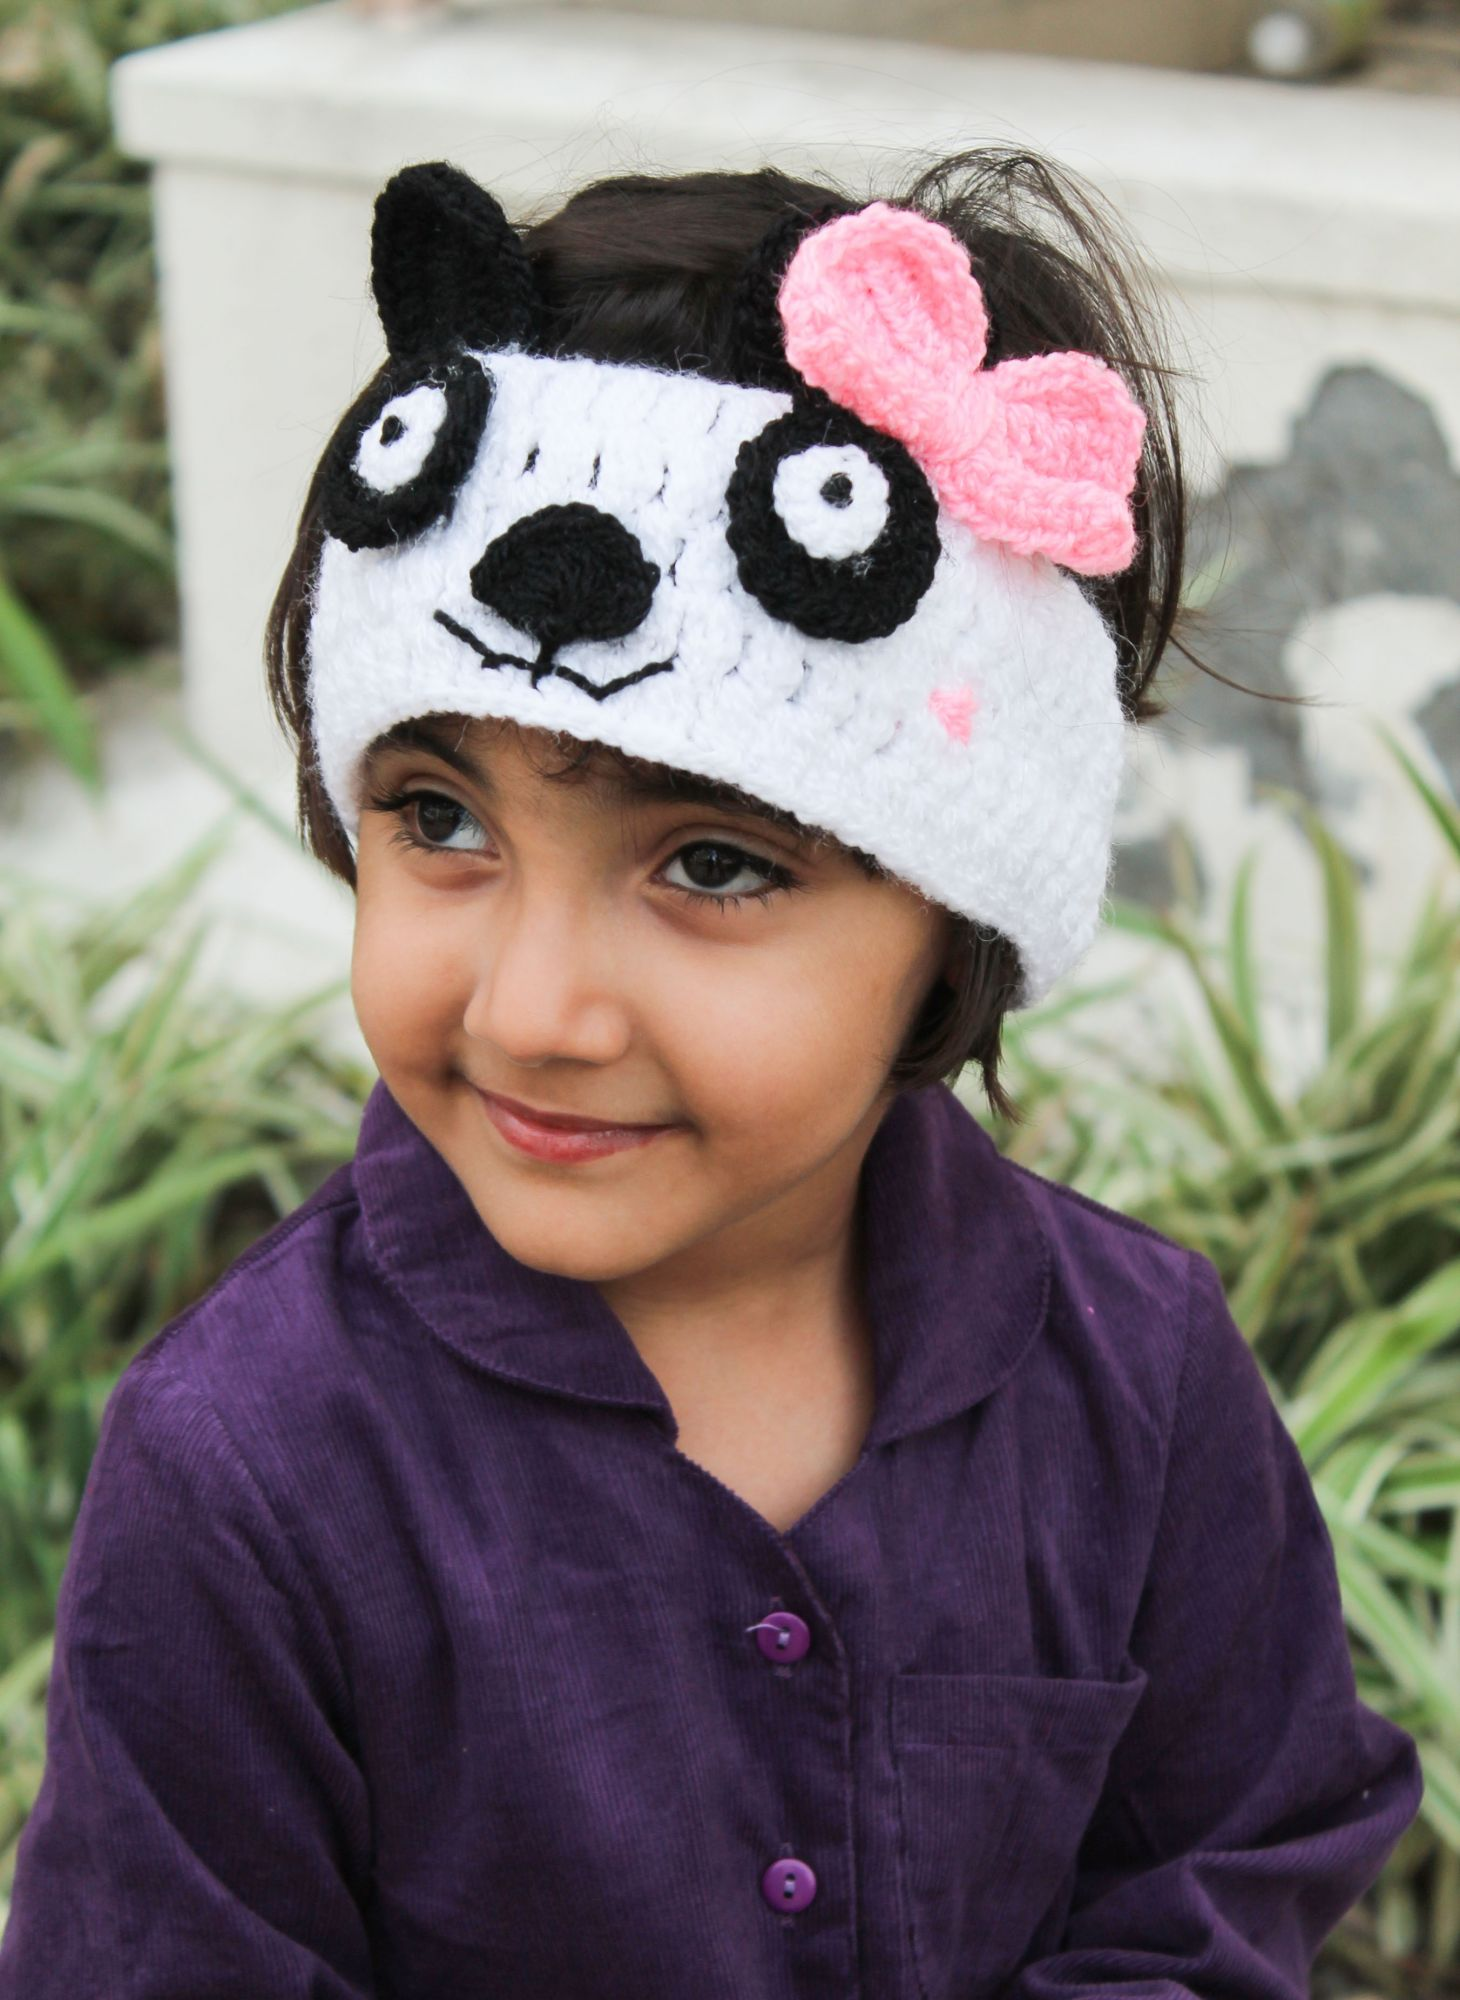 Cute Earmuff for Kids